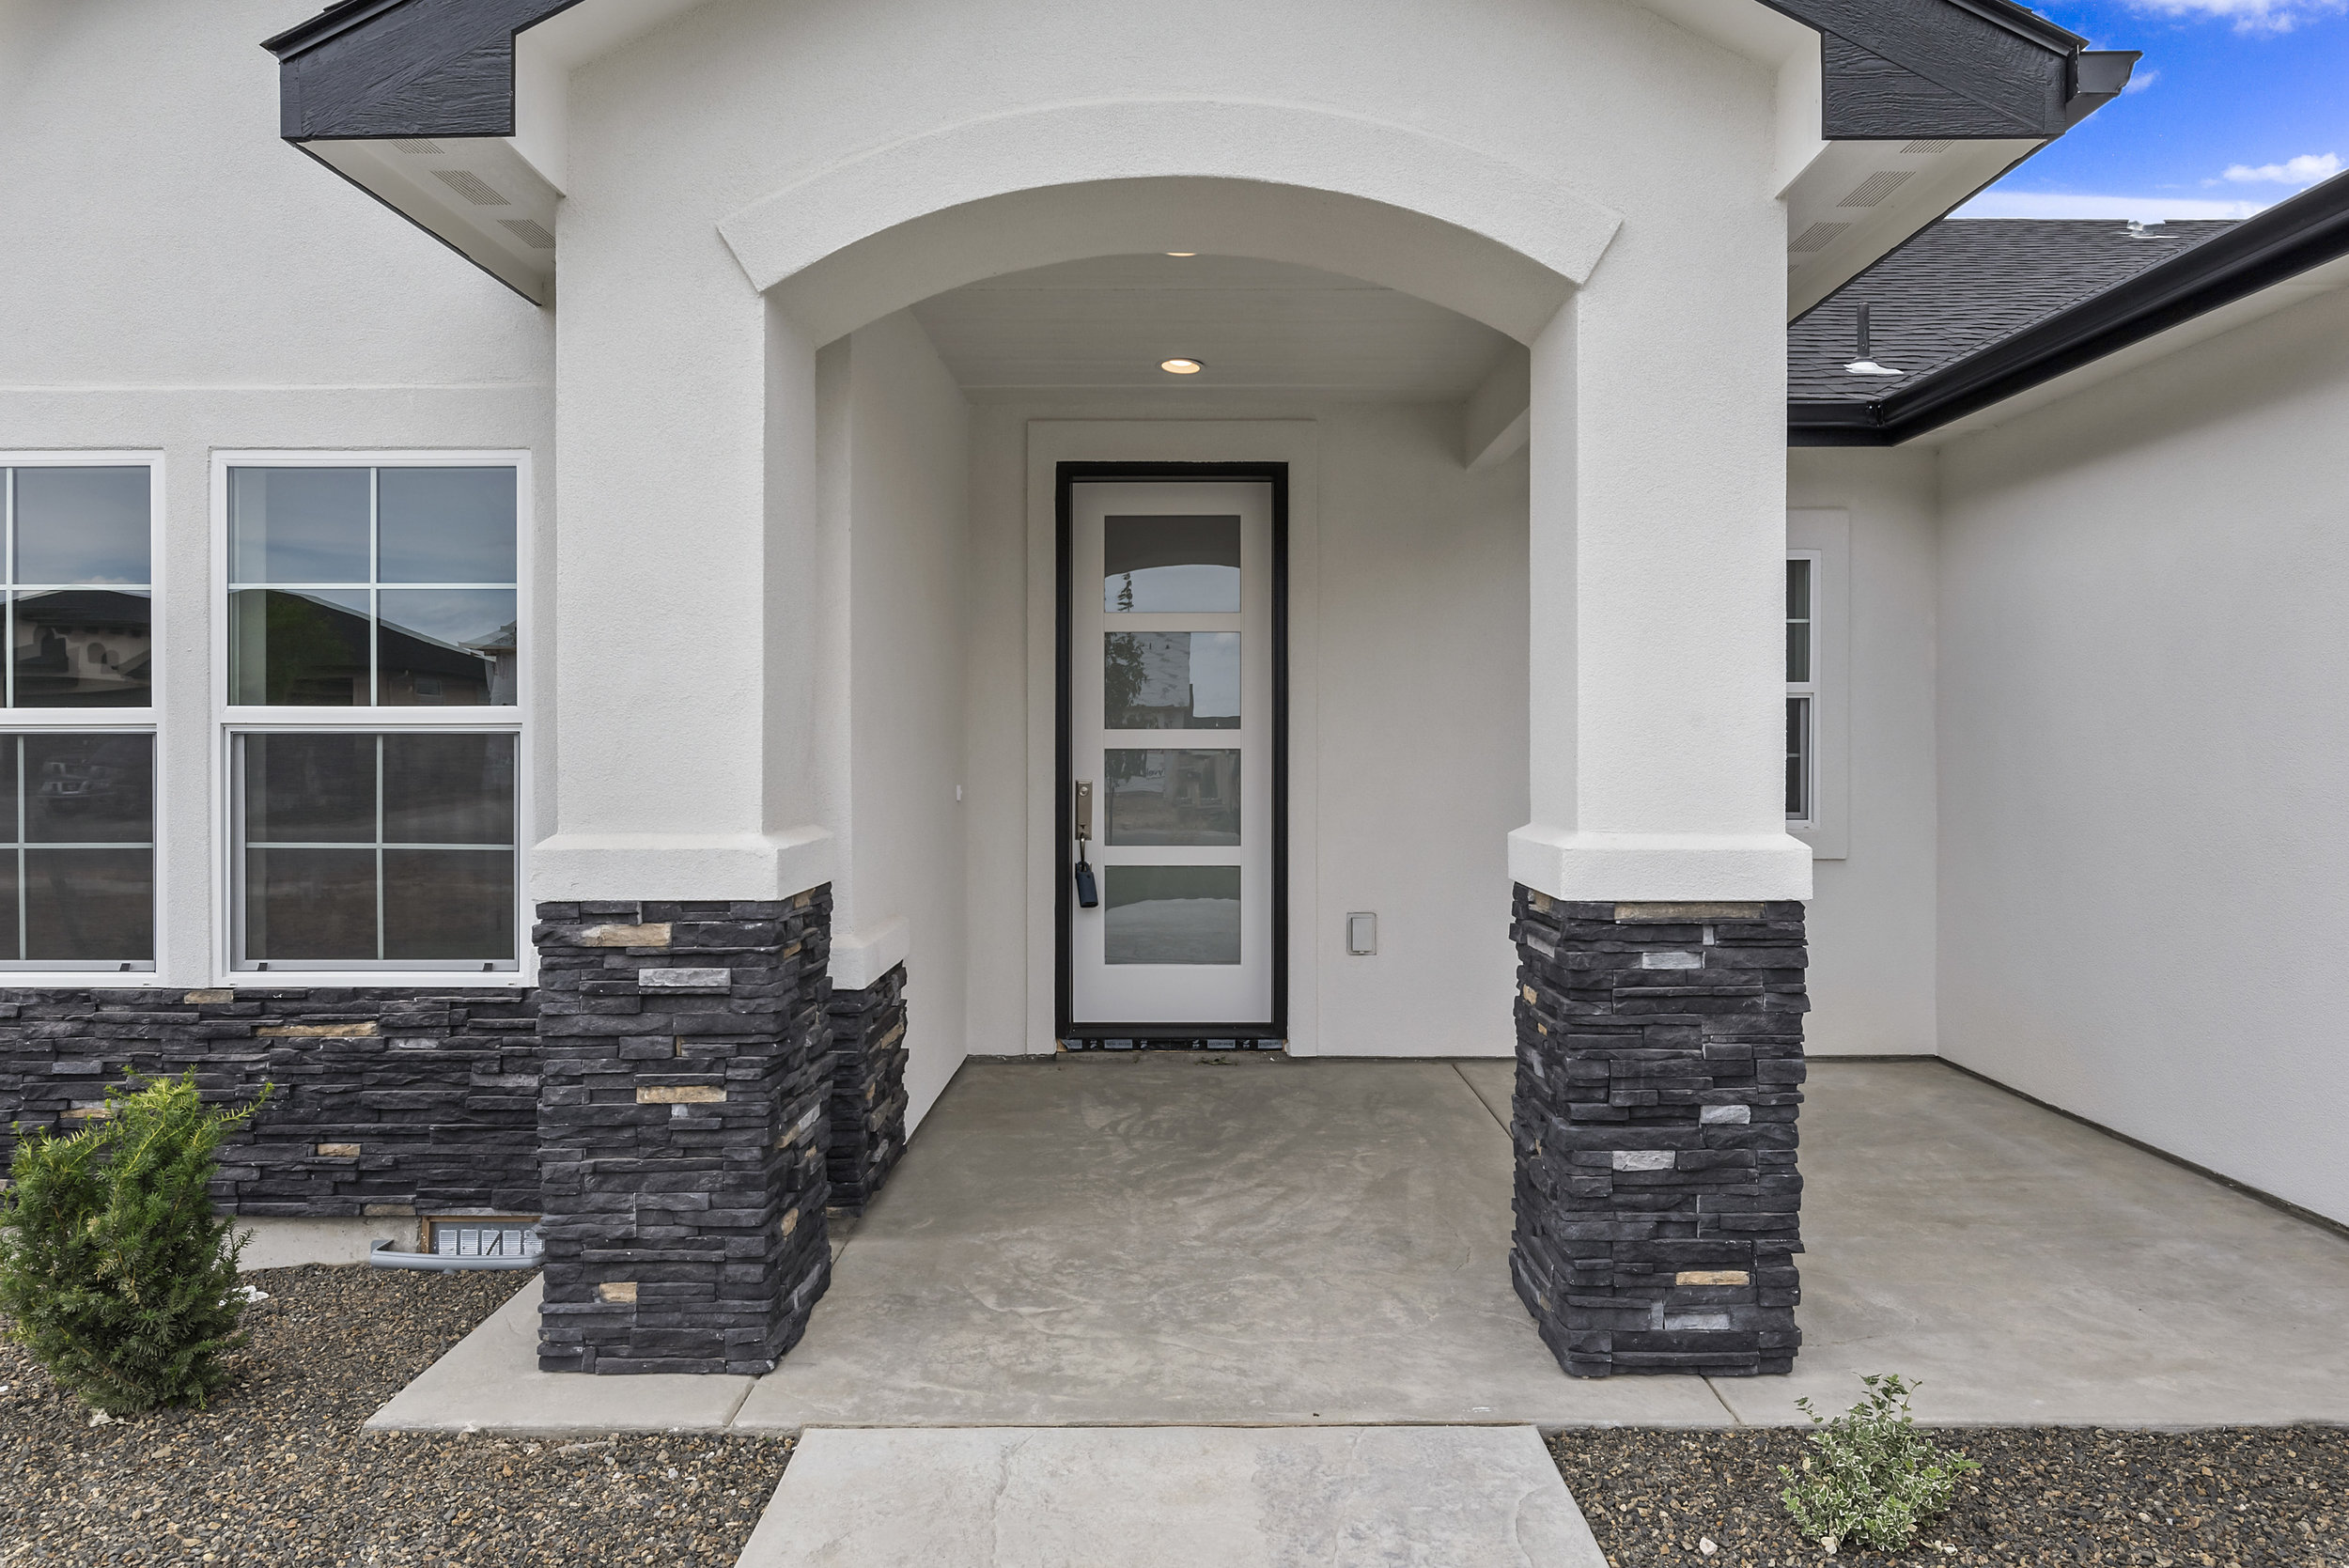 04-Front of Home.jpg